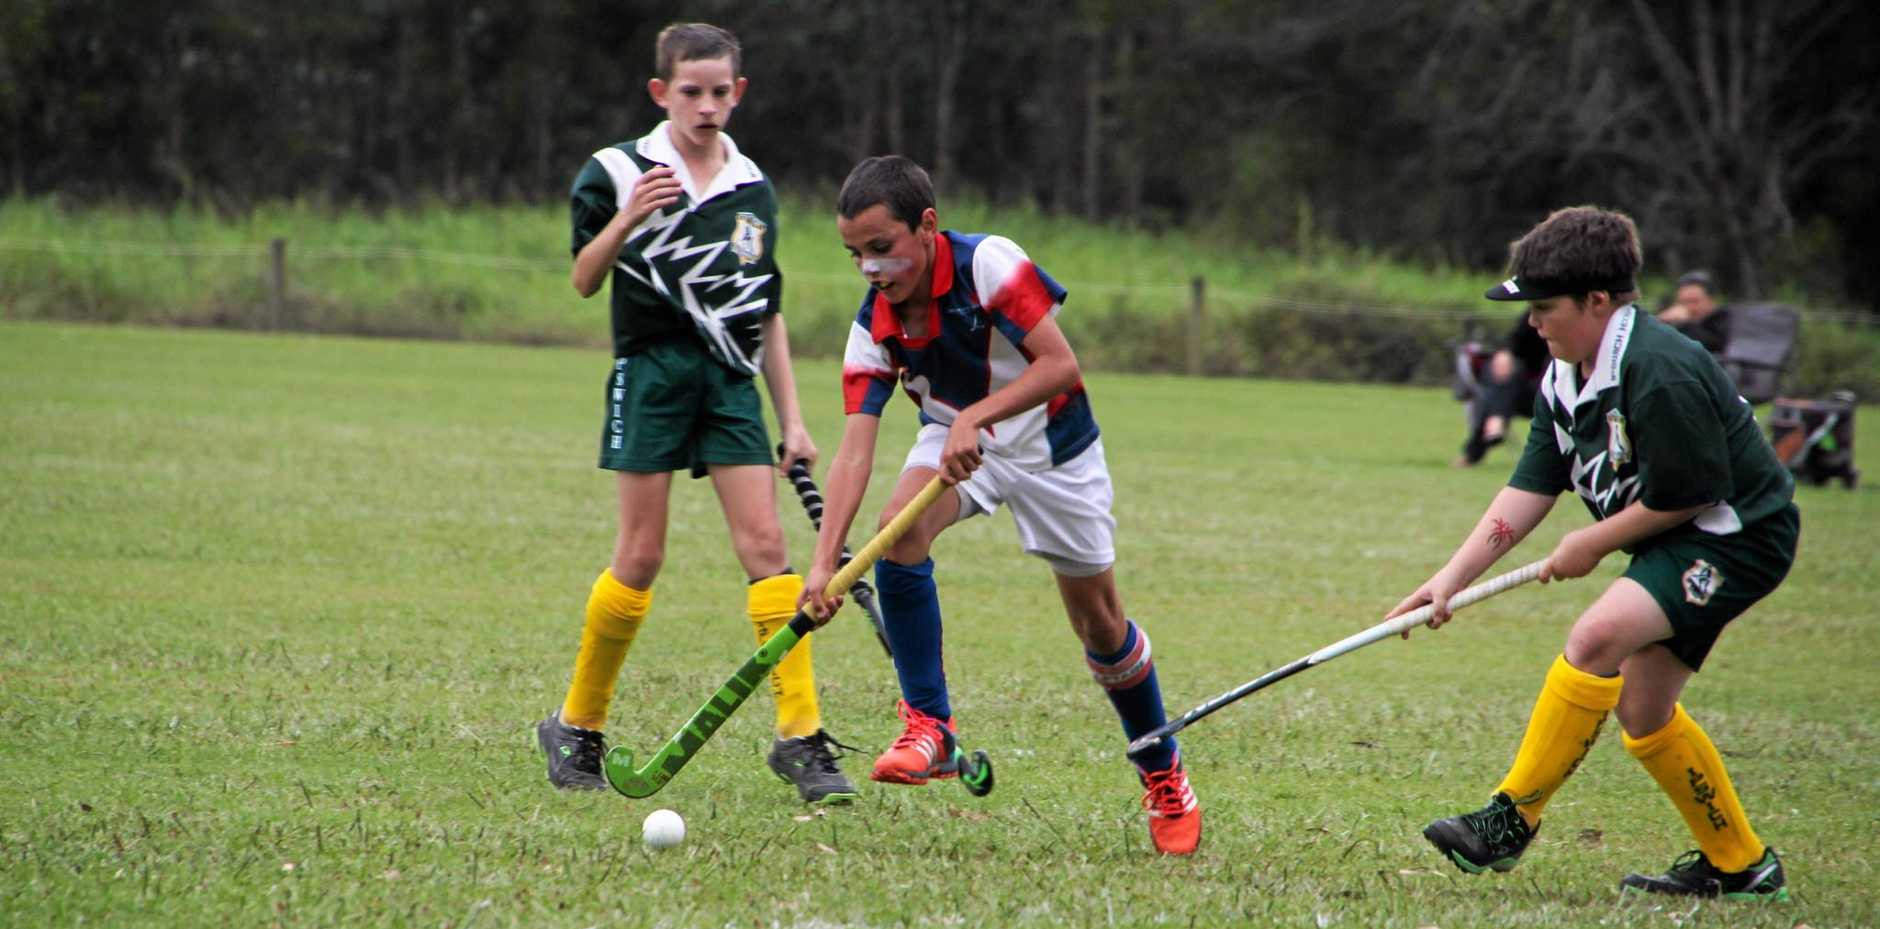 Warwick hockey player Jack Bergemann will play for Queensland at the under-13 nationals in Perth in September.